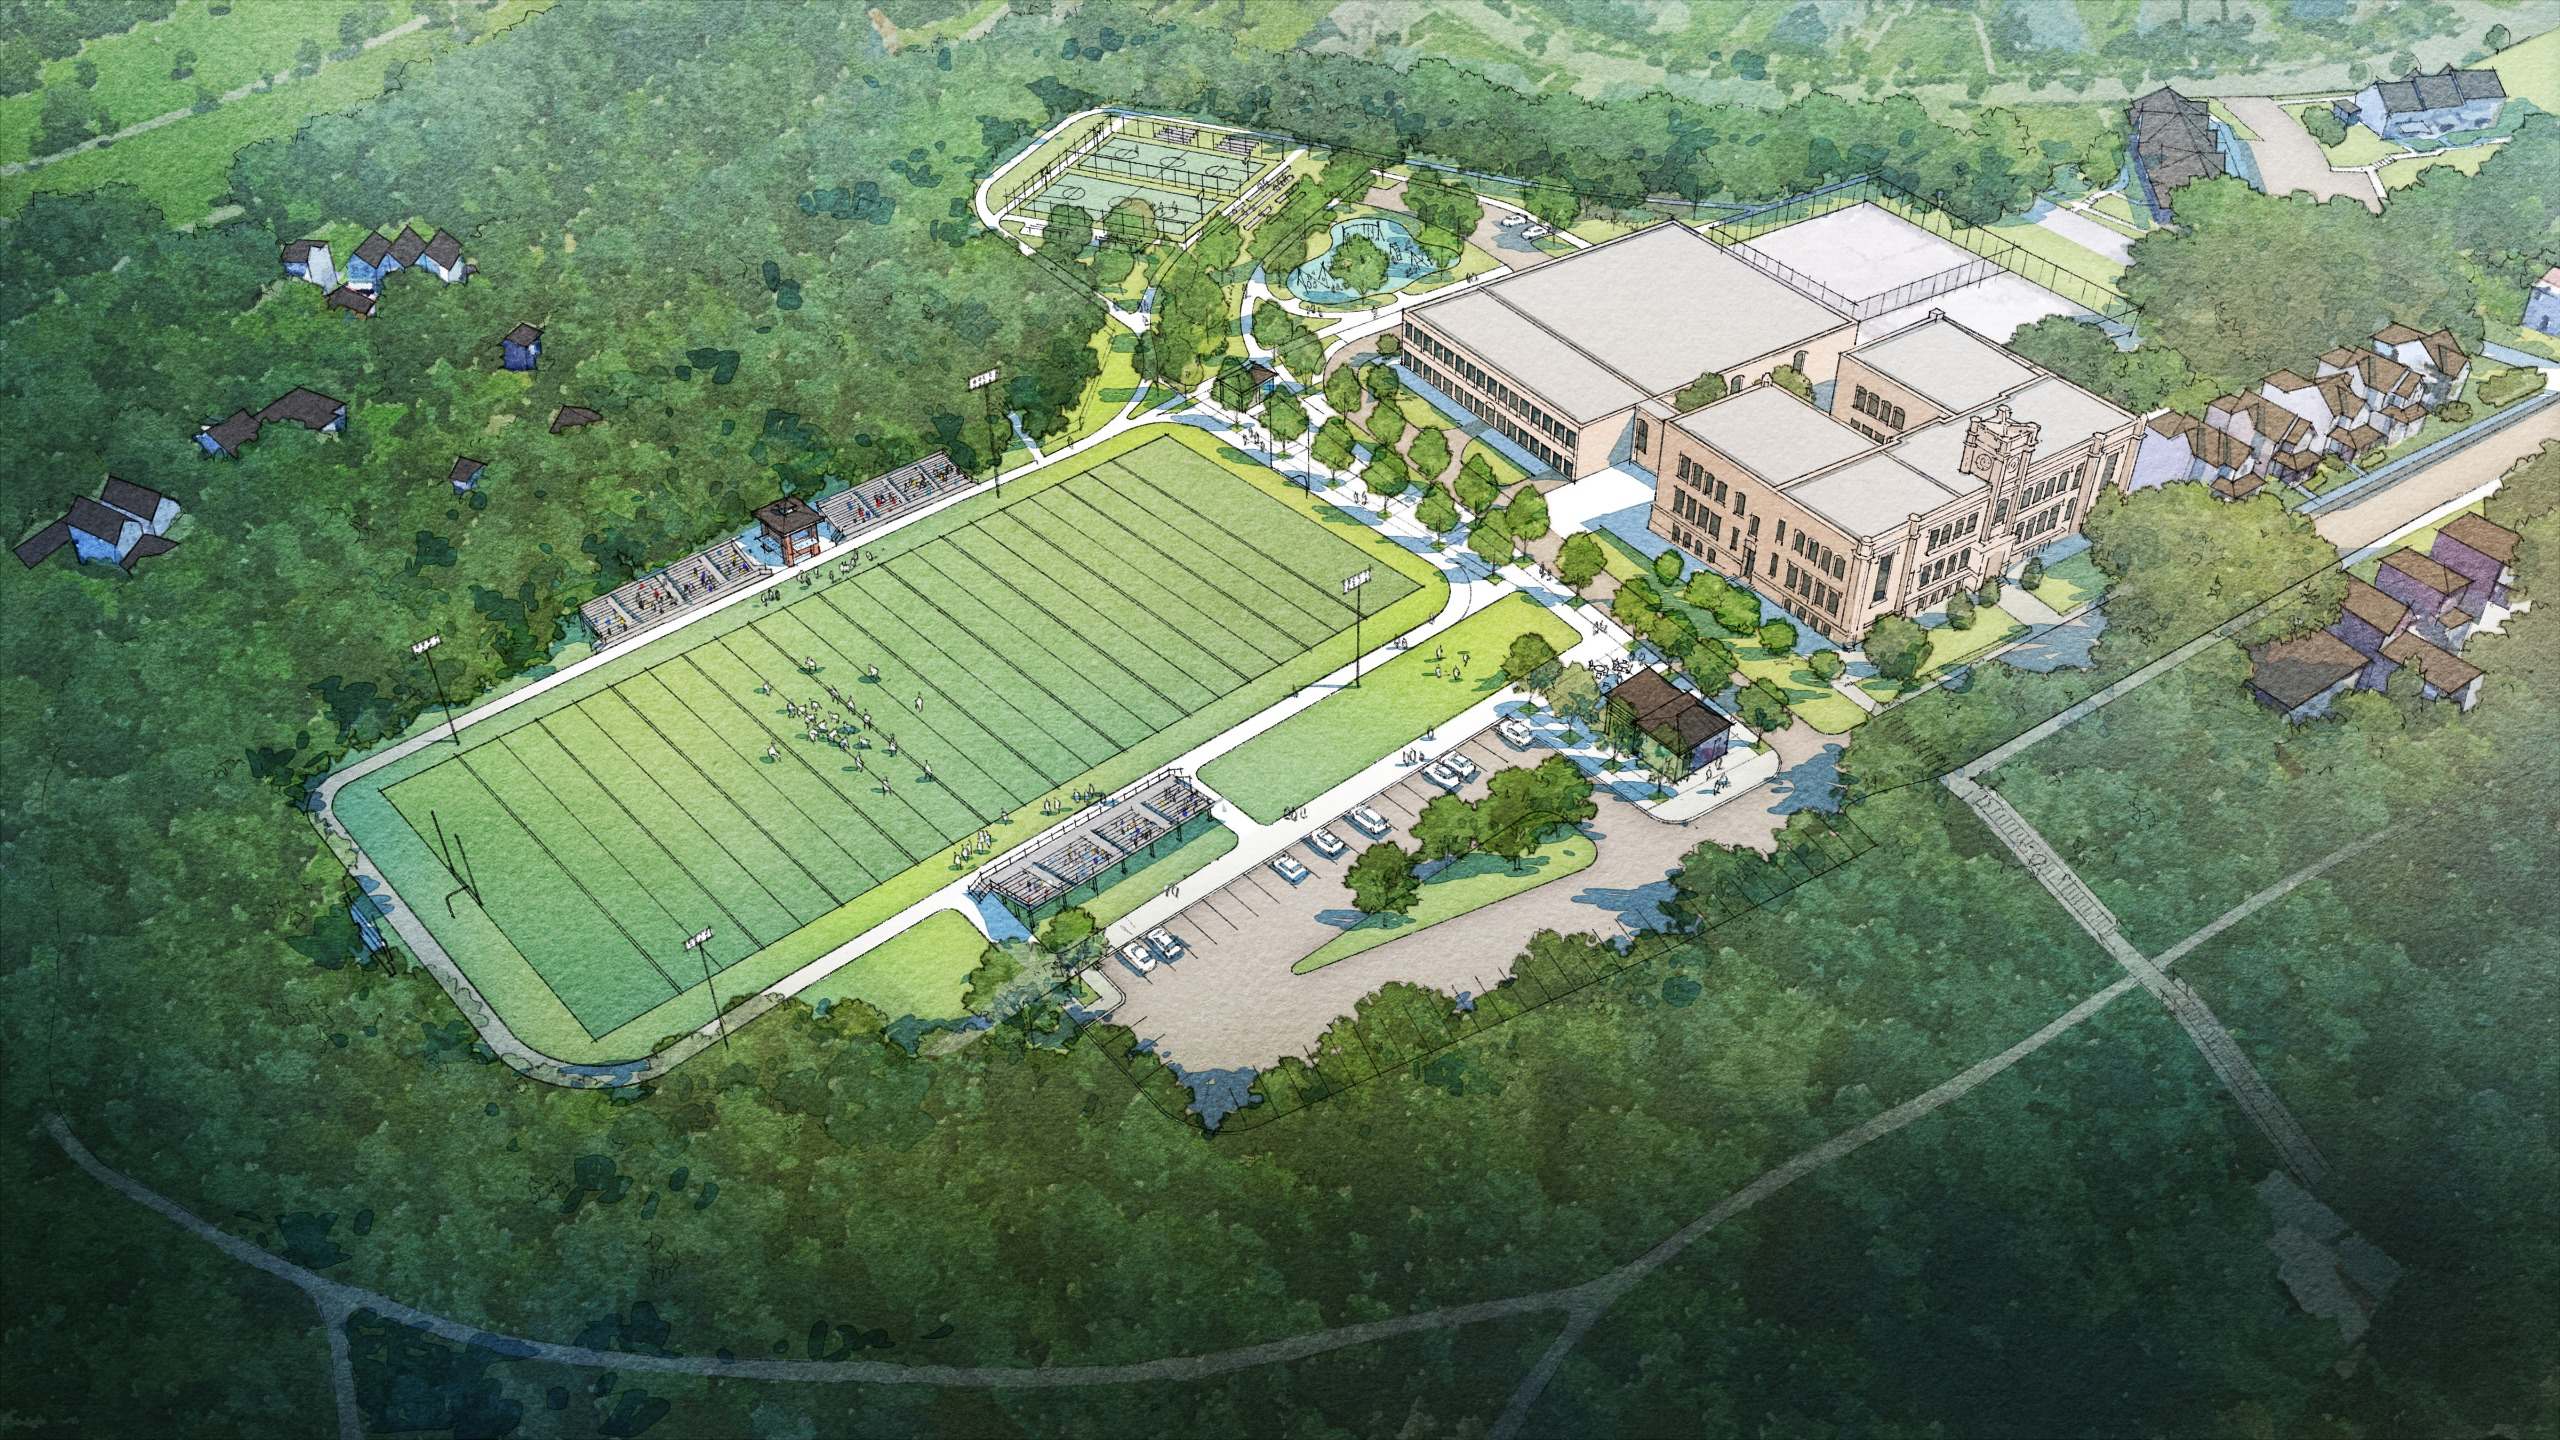 Aerial rendering of the proposed changes at Fort Pitt Park.